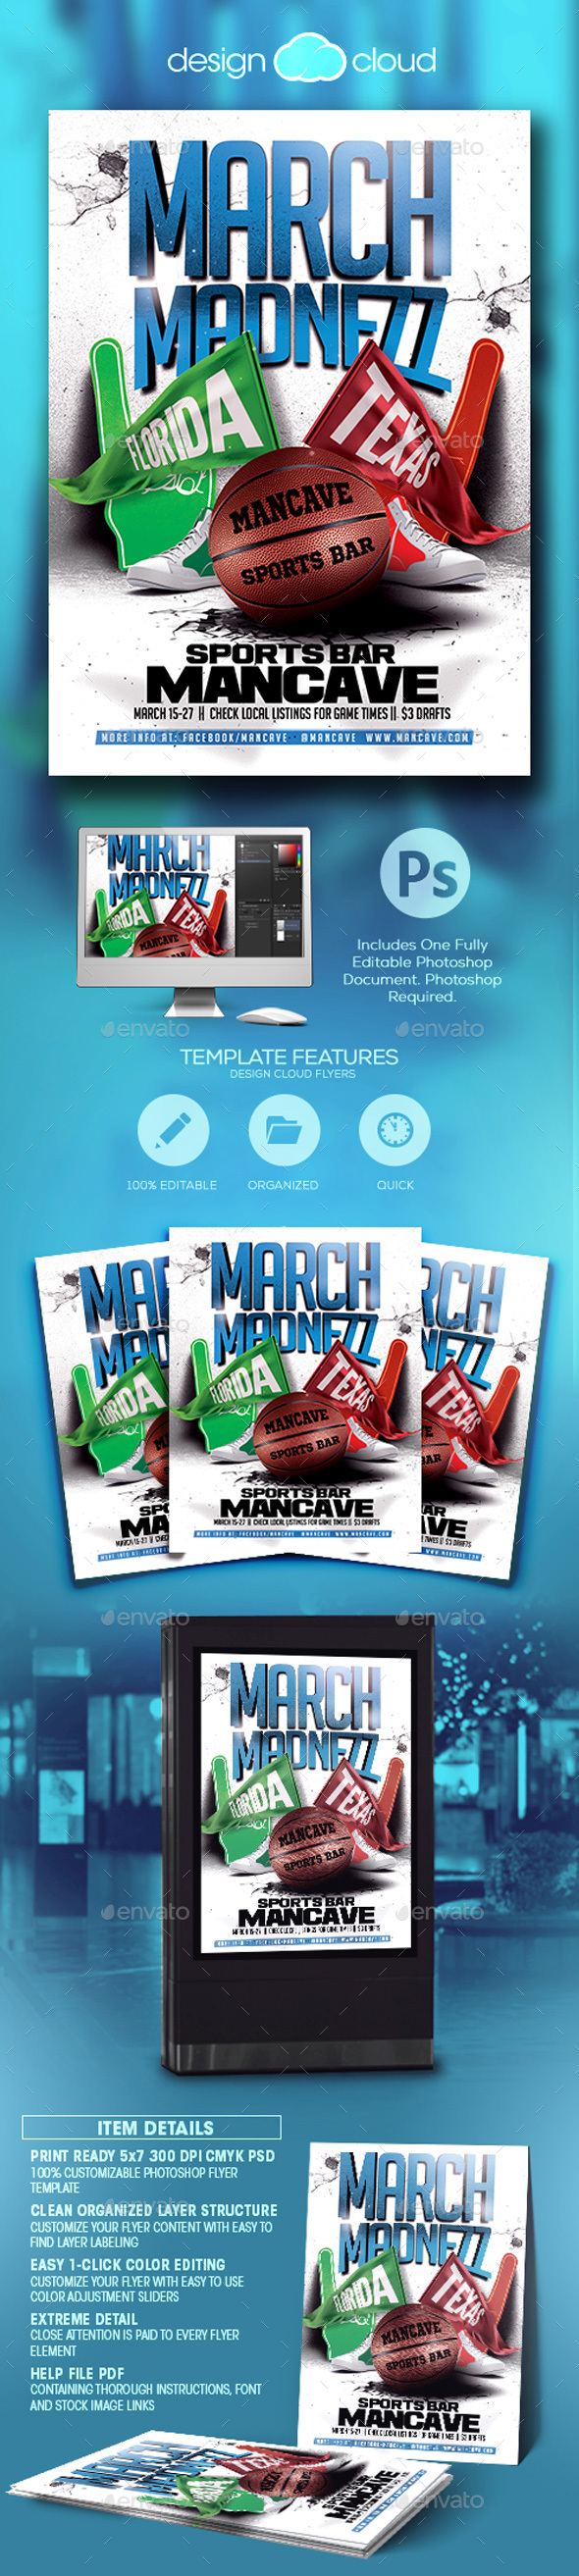 March Madnezz v2 Flyer Template - Sports Events